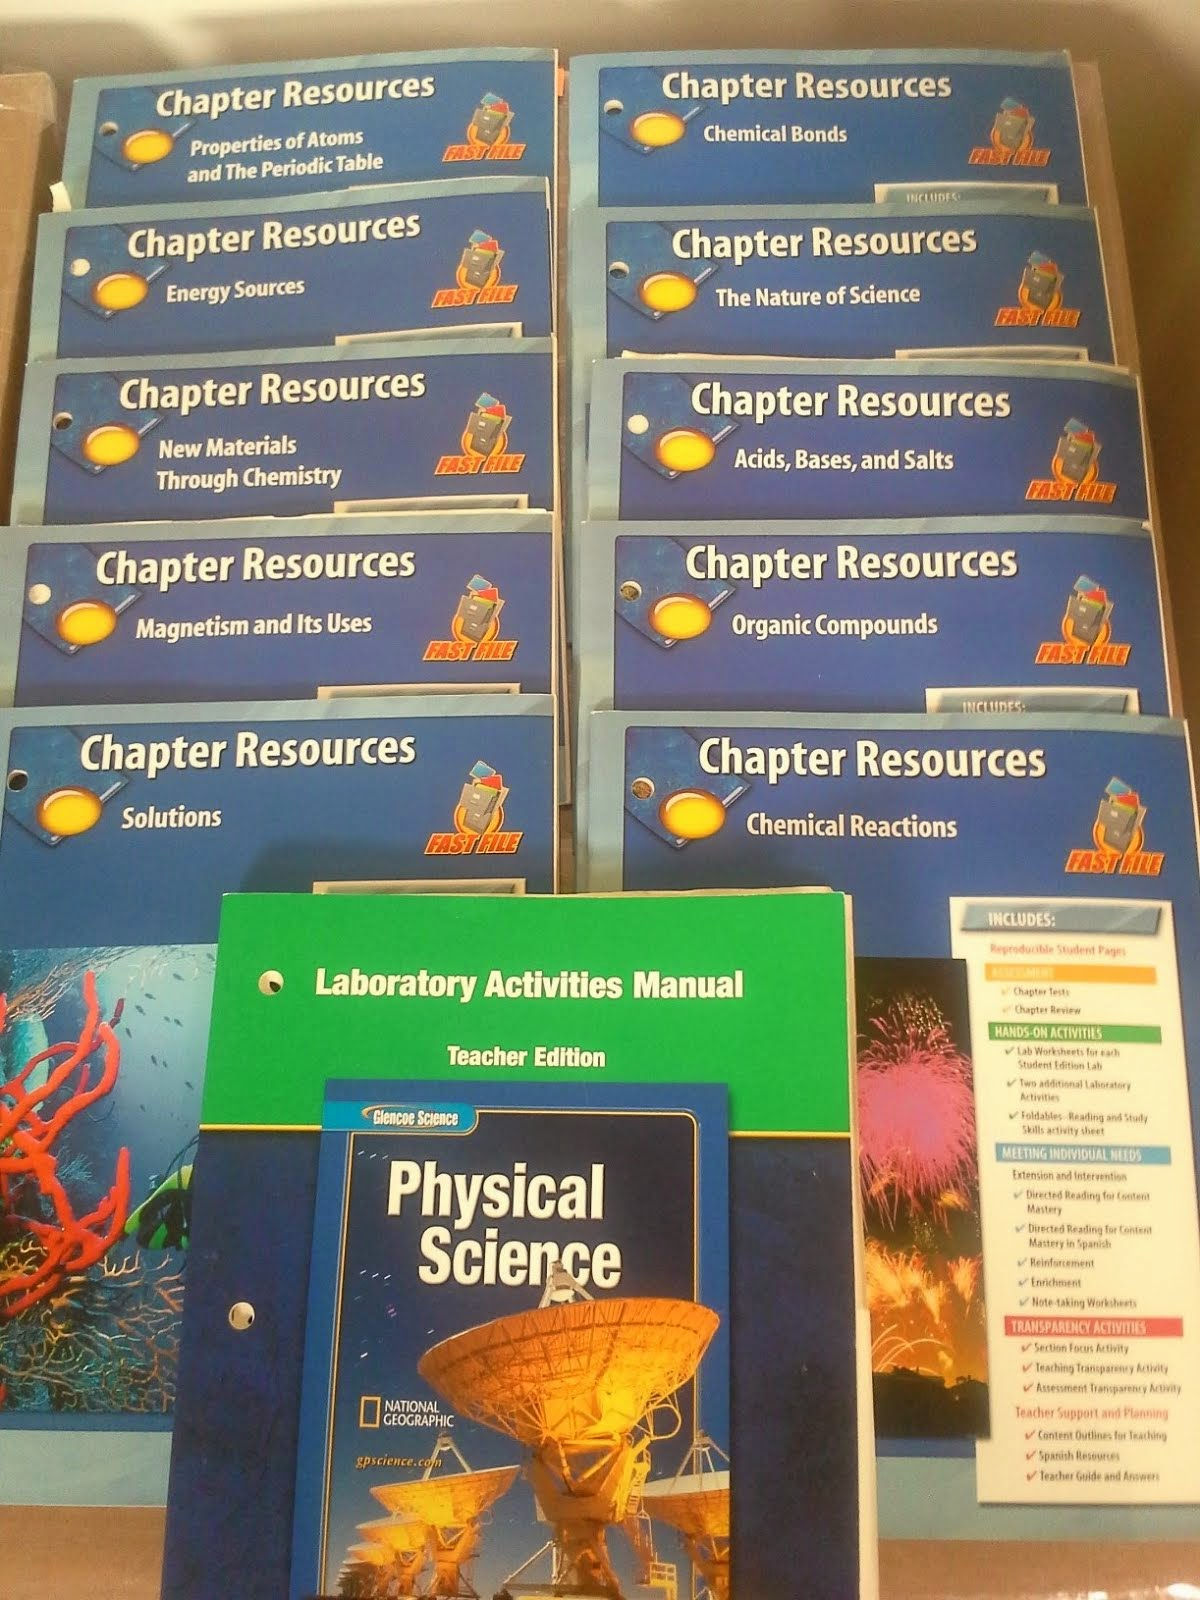 Science, Laboratory Activities Manual